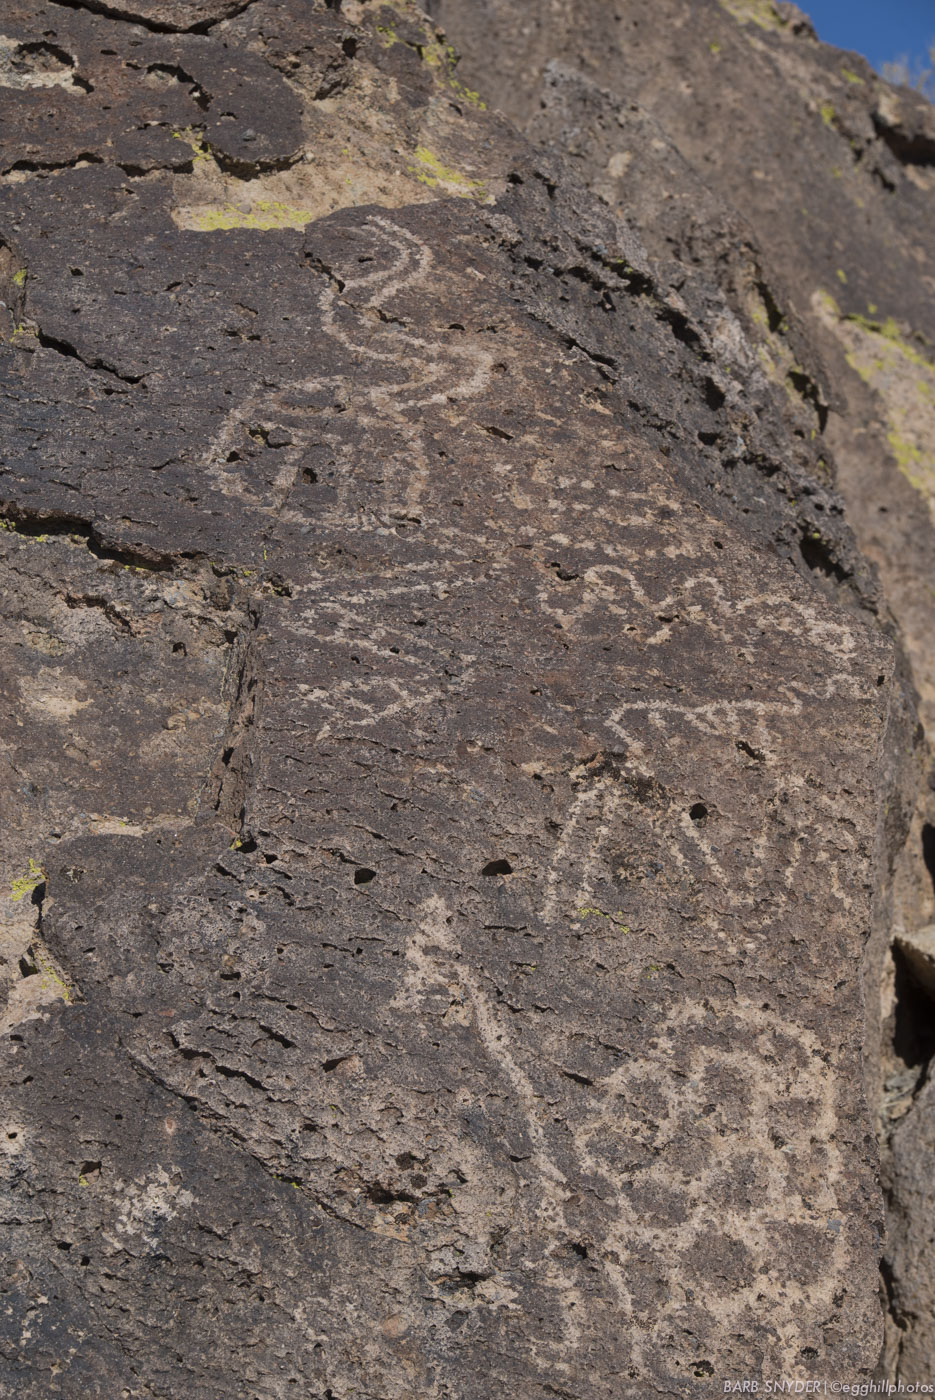 My friend Maggie is a keeper of the petroglyphs, checking them periodically. She invited me along!